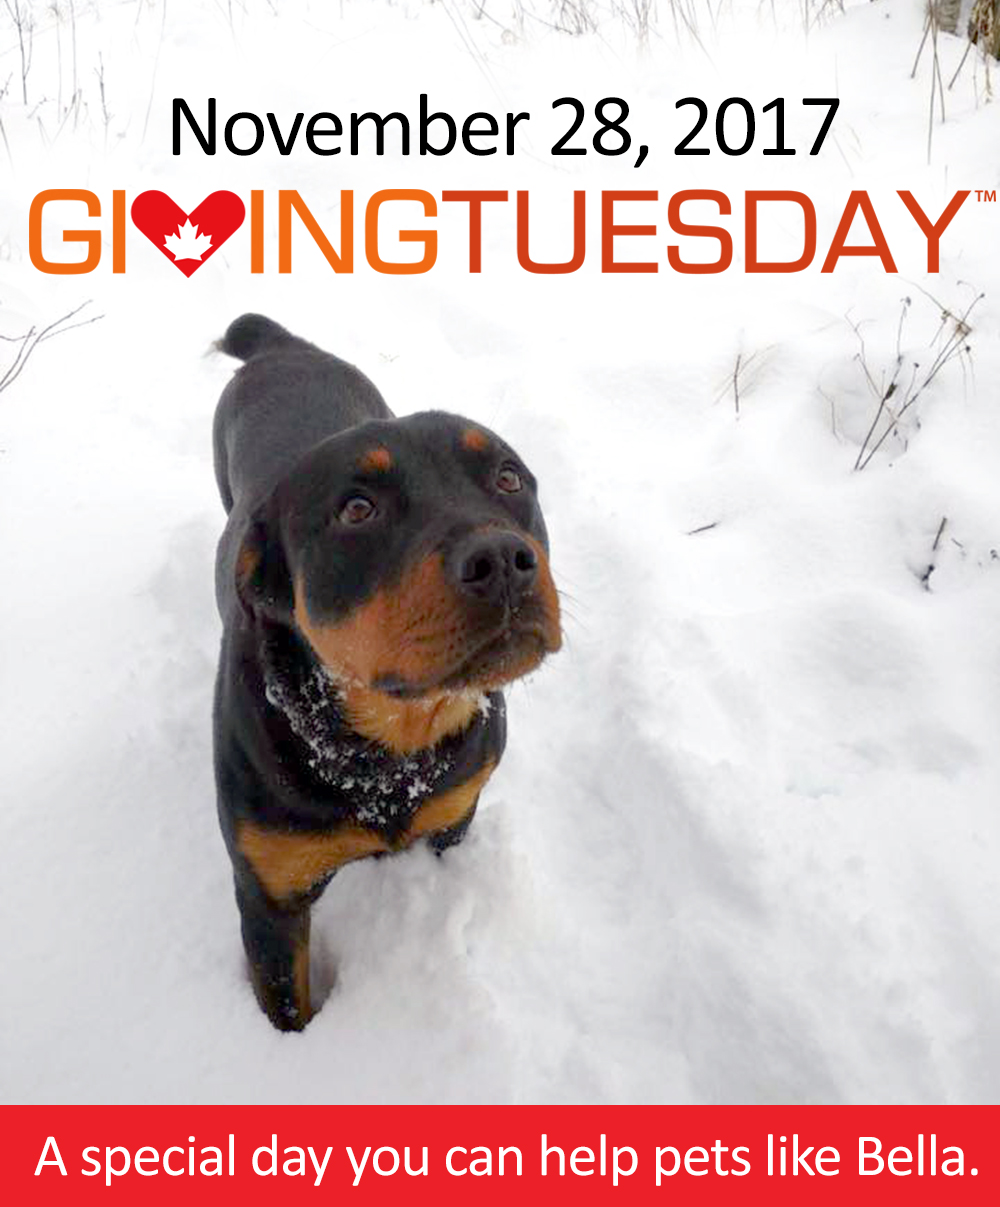 Bella-Giving Tuesday 2017